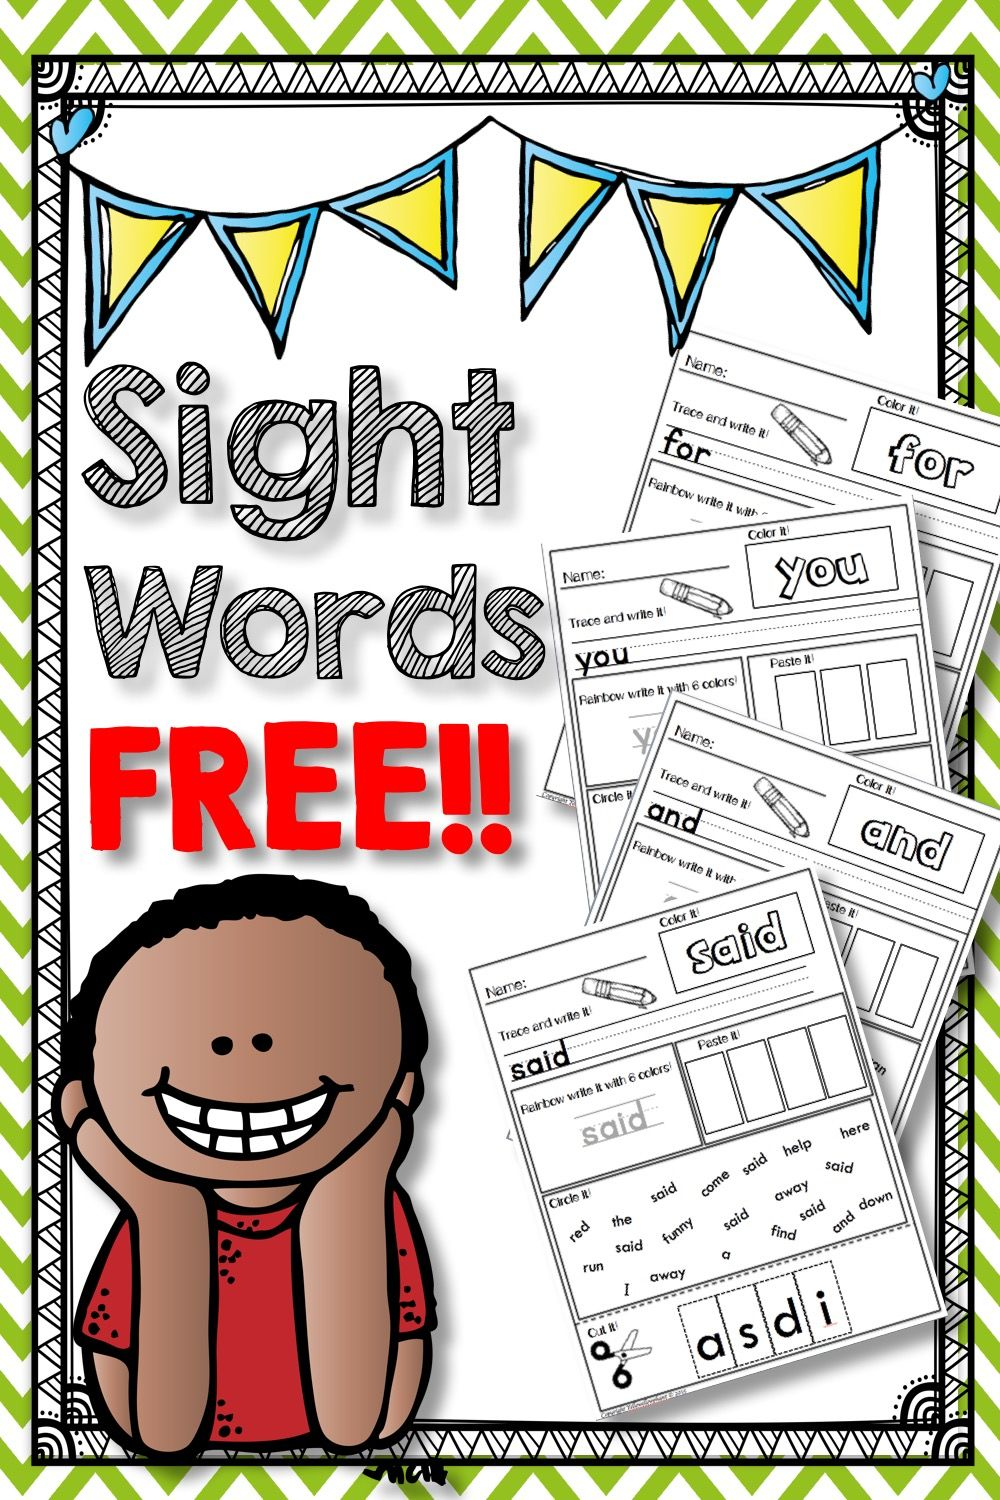 Sight Words Free Sight word worksheets, Pre primer sight